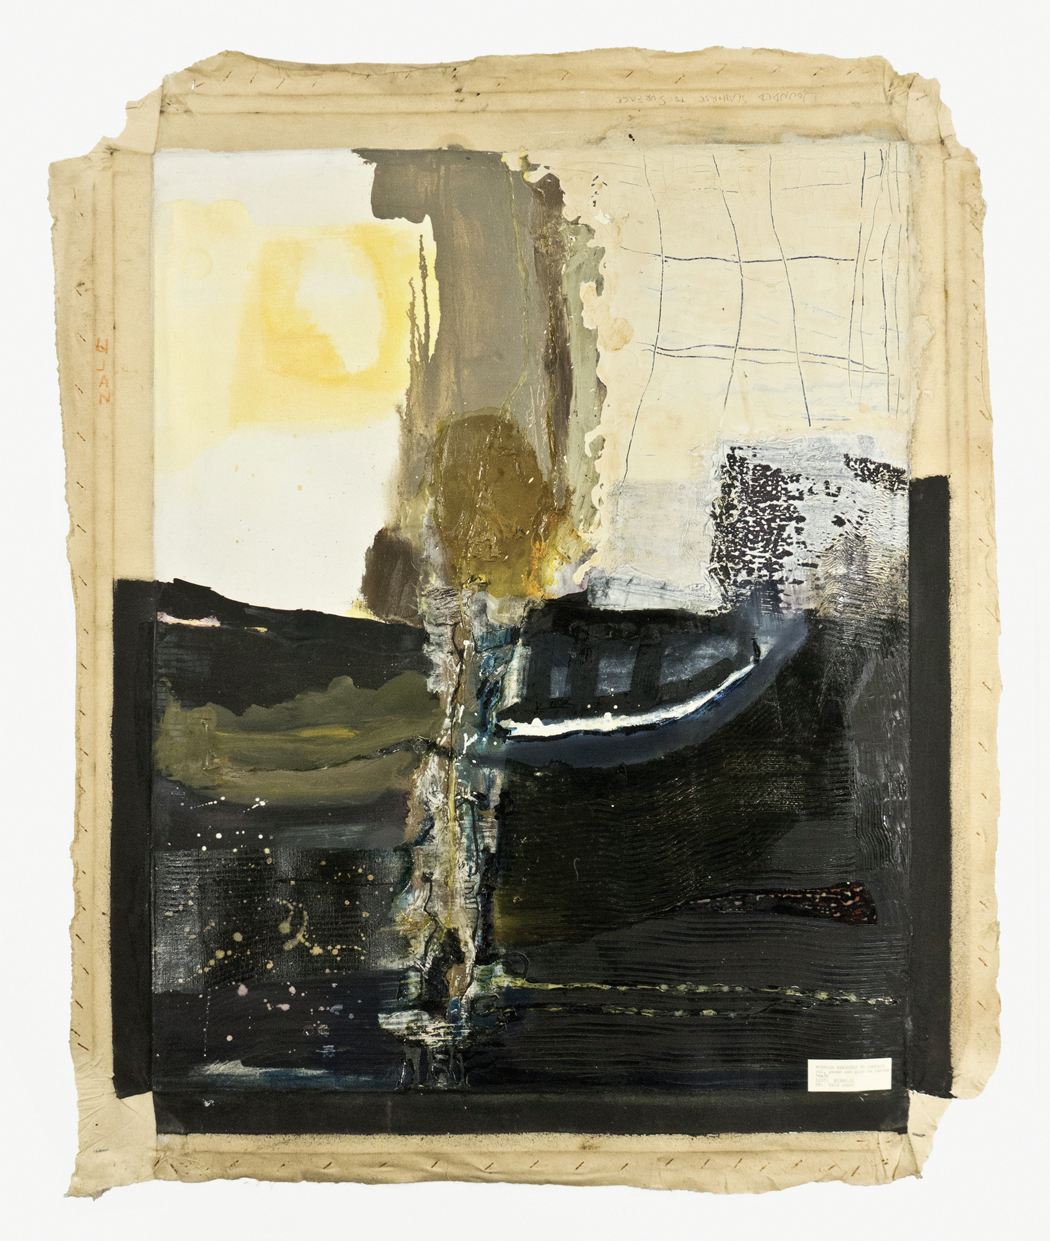 "Wounded Seahorse to Surface; 1962; Oil, Gesso and Glue on Canvas; 68 3⁄4 x 39 1⁄2""; Item #017"